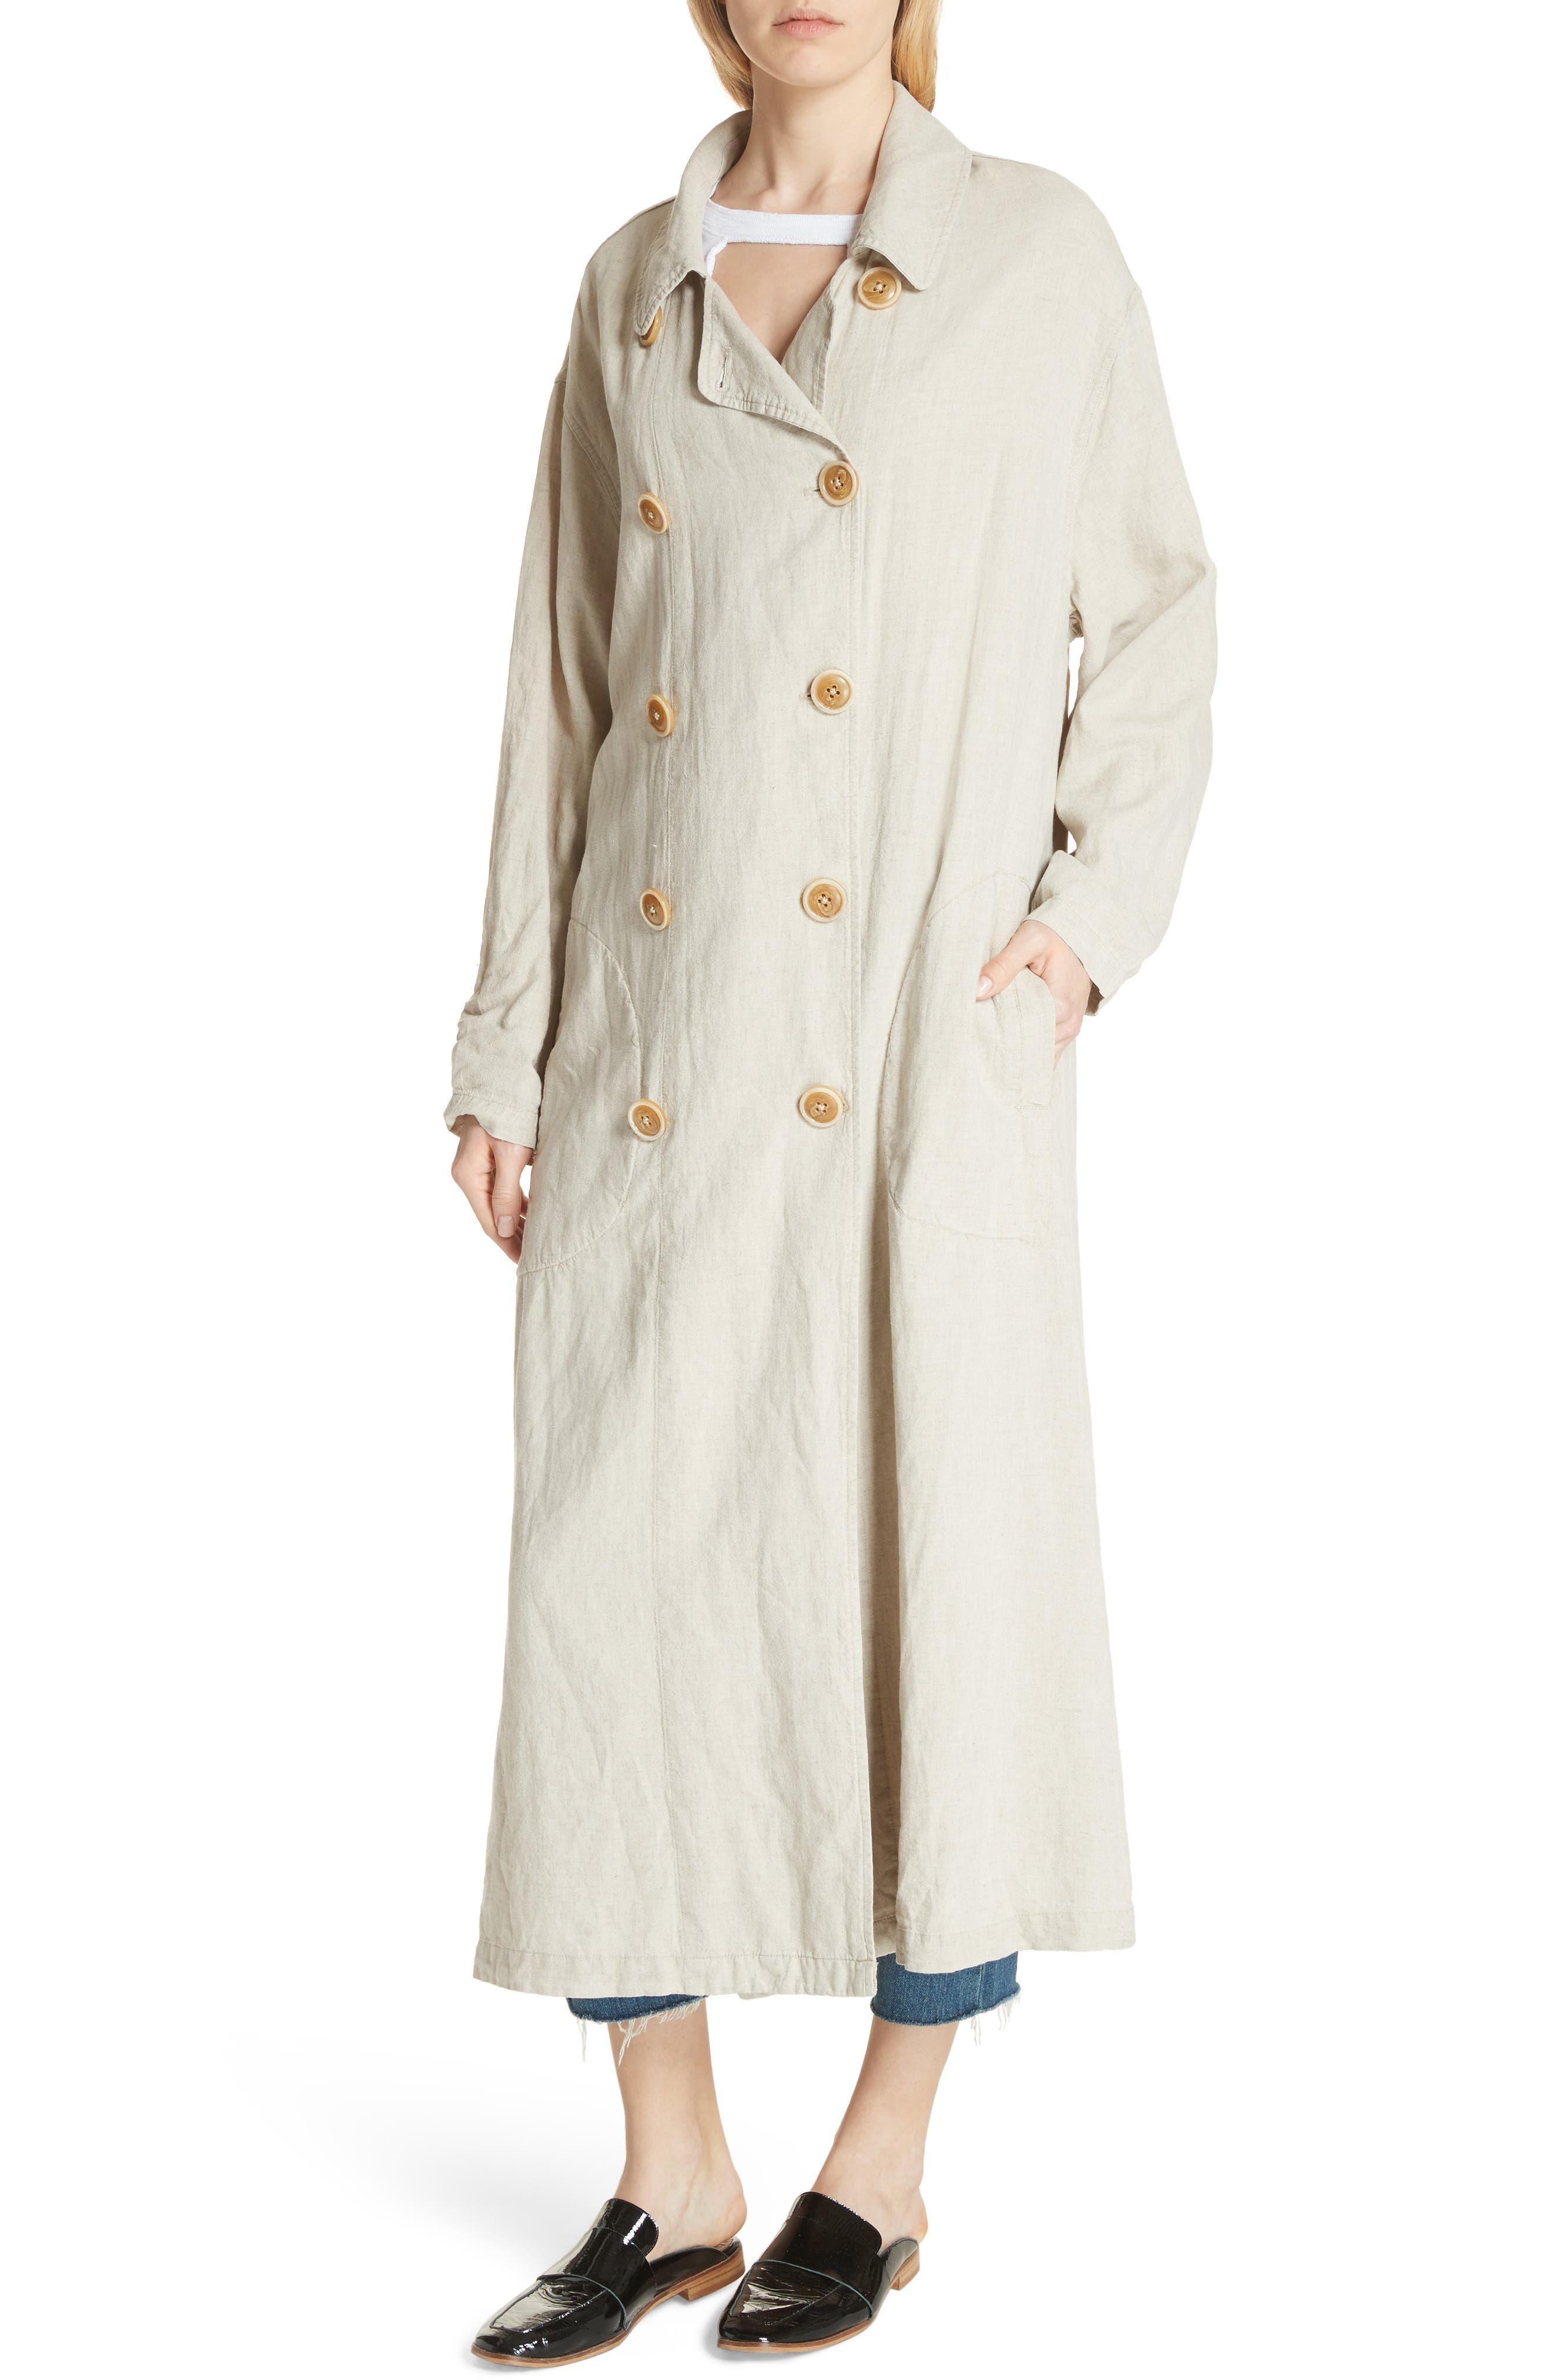 Sweet Melody Duster Jacket,                             Alternate thumbnail 4, color,                             250